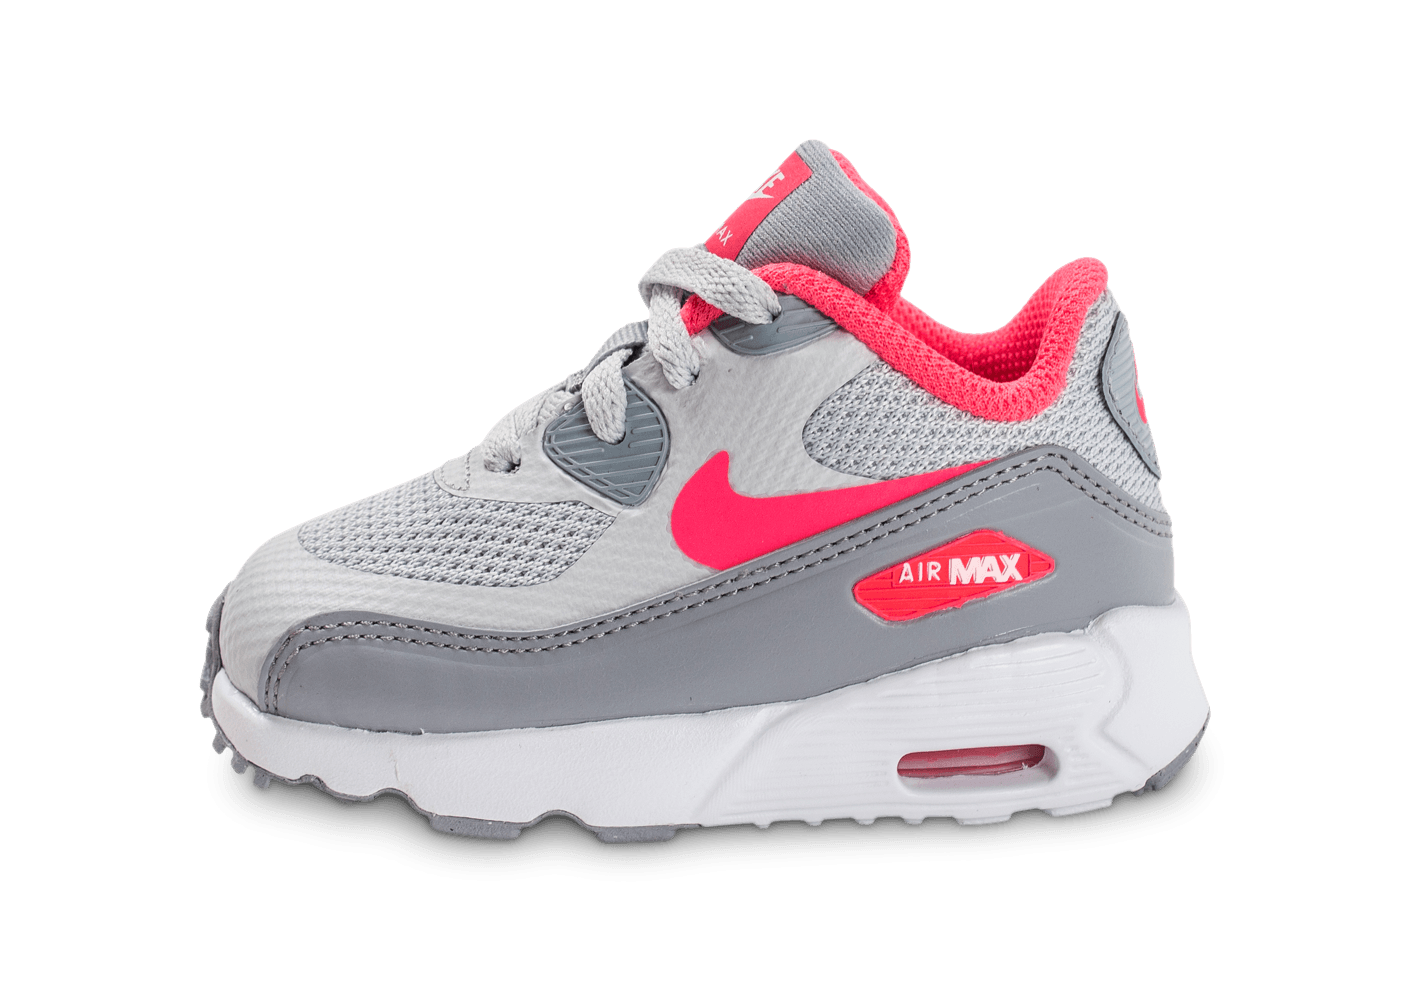 Vente air max pas cher bebe Chaussures 1341